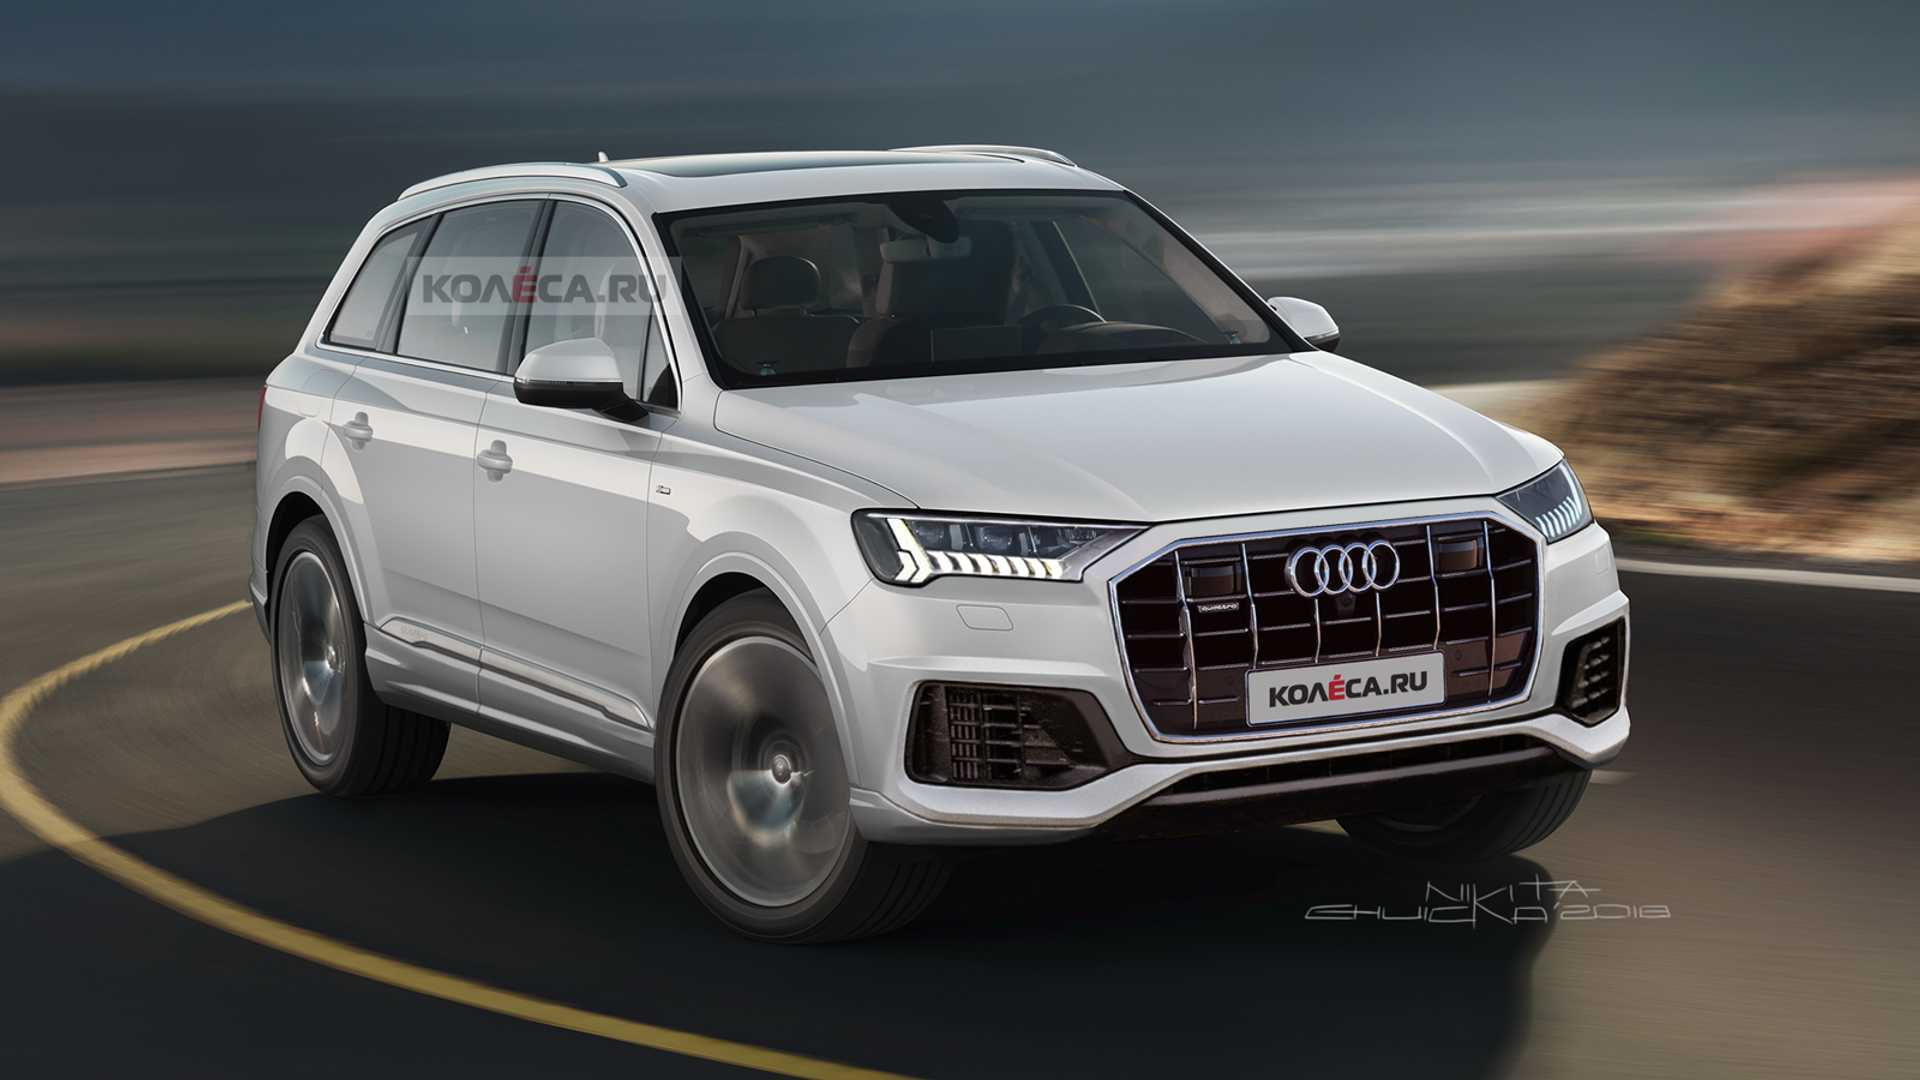 31 New Audi Suv 2020 Images